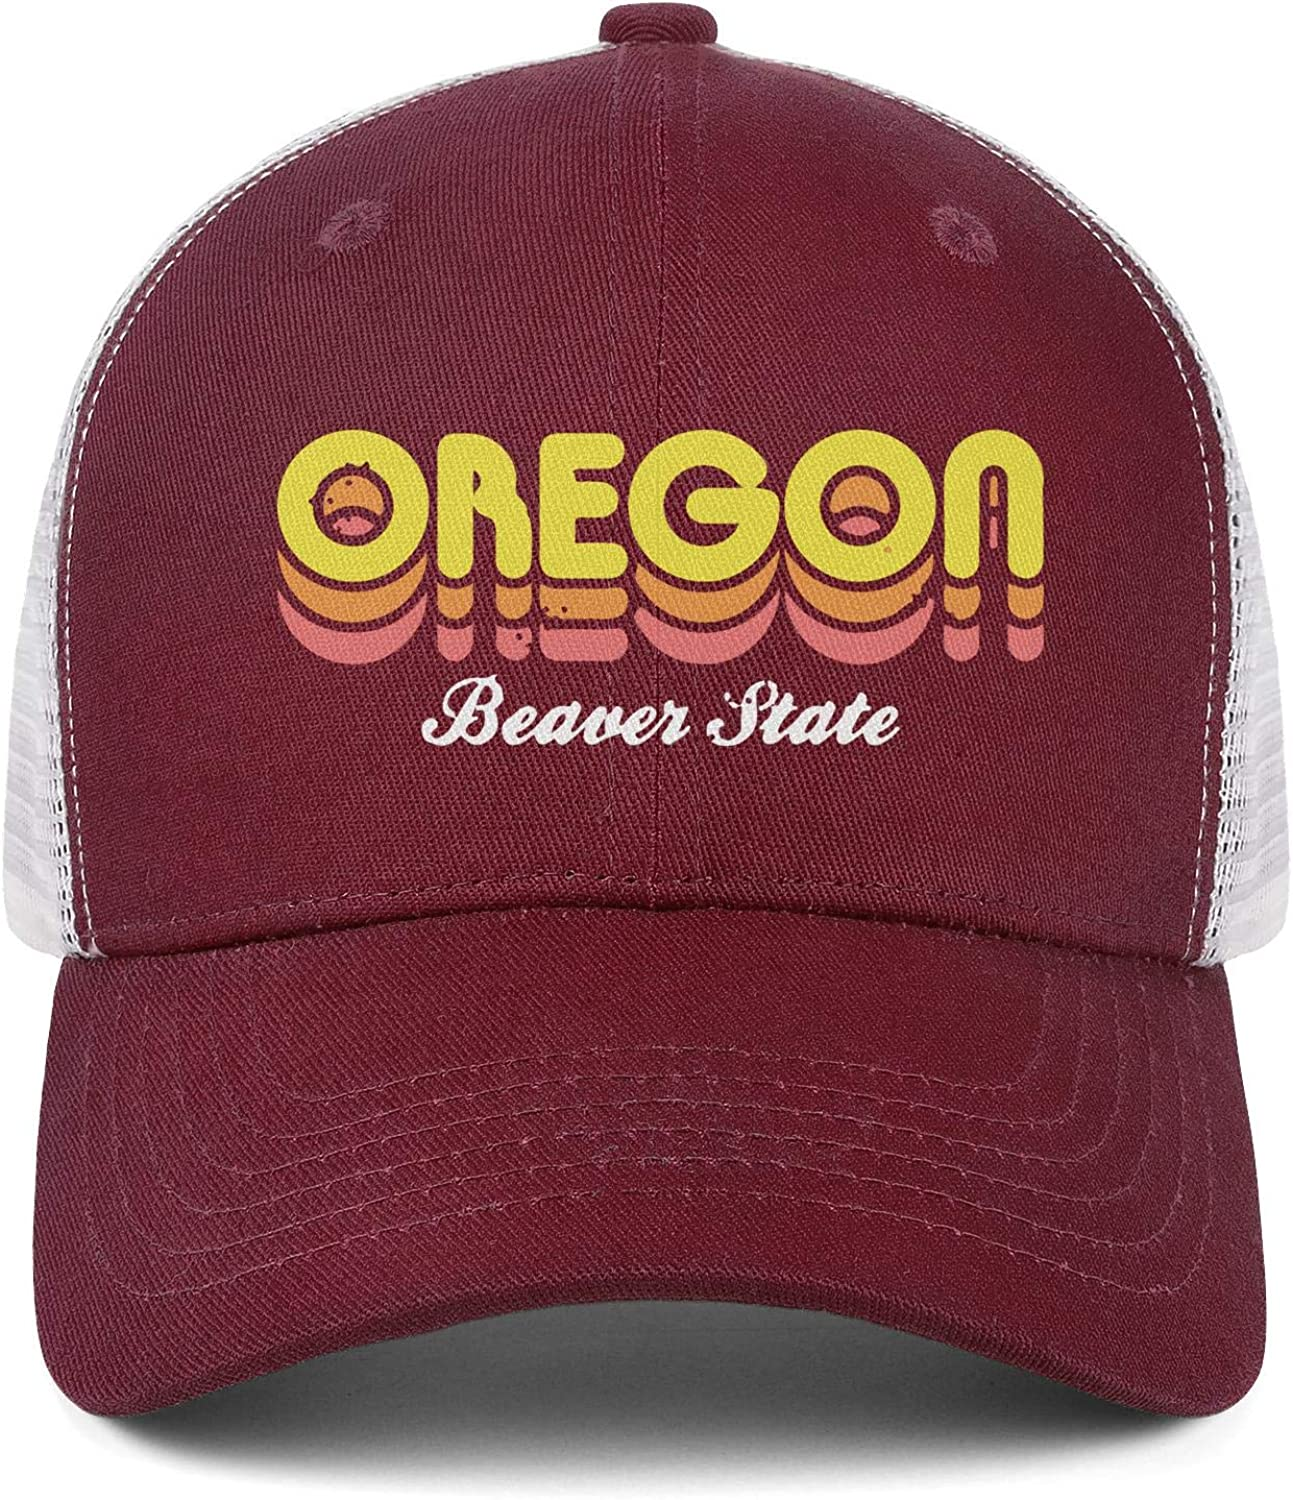 Beaver State Oregon Men//Women New Hip Hop Caps Hip Hop Caps